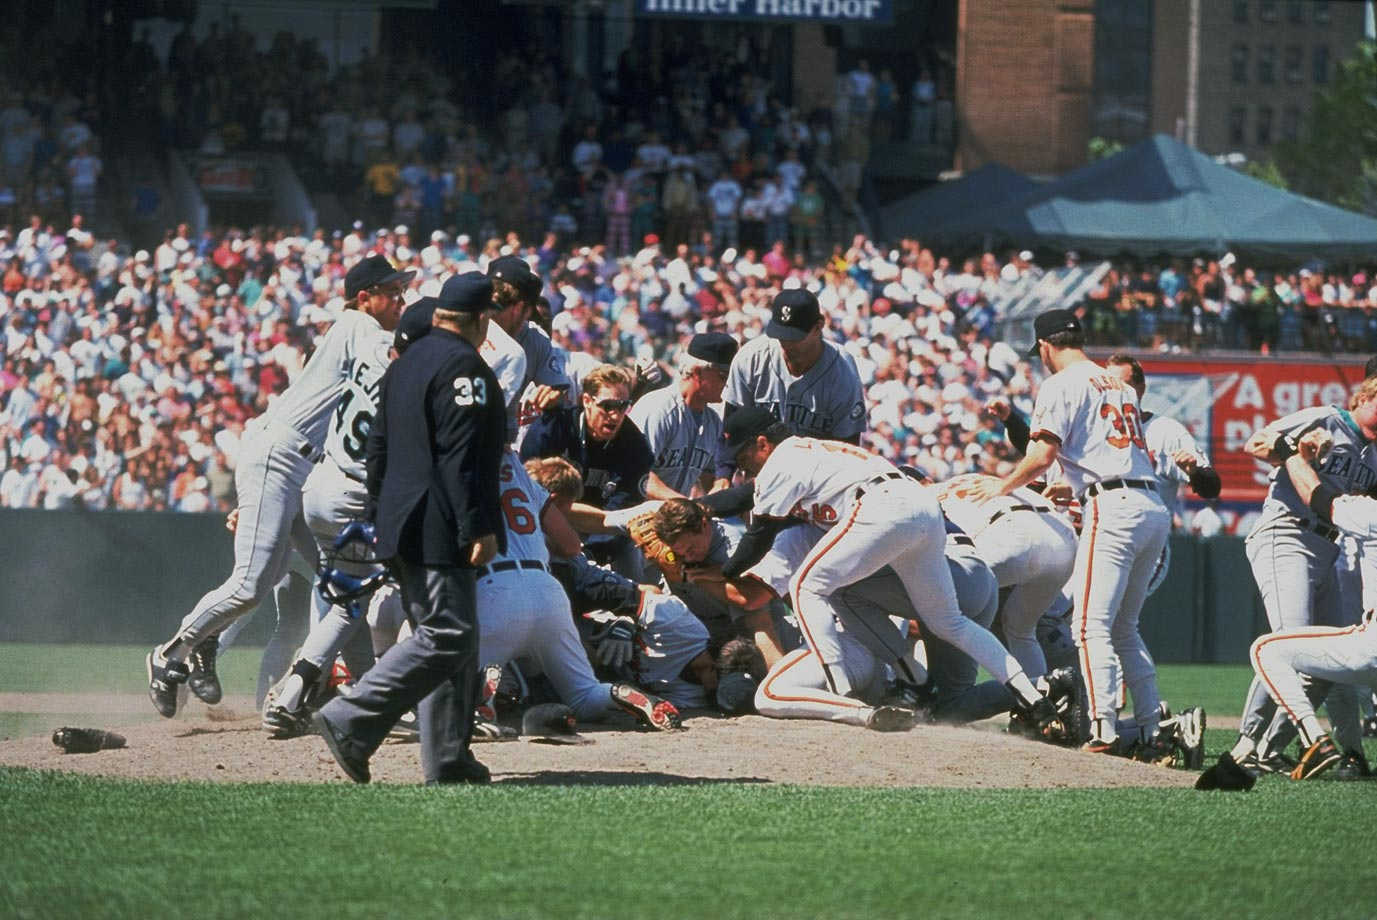 By the time the Orioles' Mike Mussina hit Bill Hasselman in the shoulder with a high fastball in the seventh inning, tempers in this game were already running hot. Once plunked, Hasselman charged Mussina, and amid the ensuing 20-minute scuffle, Bosio re-fractured his left collarbone, an injury from which he had just returned after missing a month. He missed another 19 days and served a five-game suspension upon returning, while six other players drew suspensions of three to five games as well. Hasselman received only a three-gamer, but Mussina wasn't disciplined even though Piniella claimed that an Oriole told him that the plunking had been ordered.